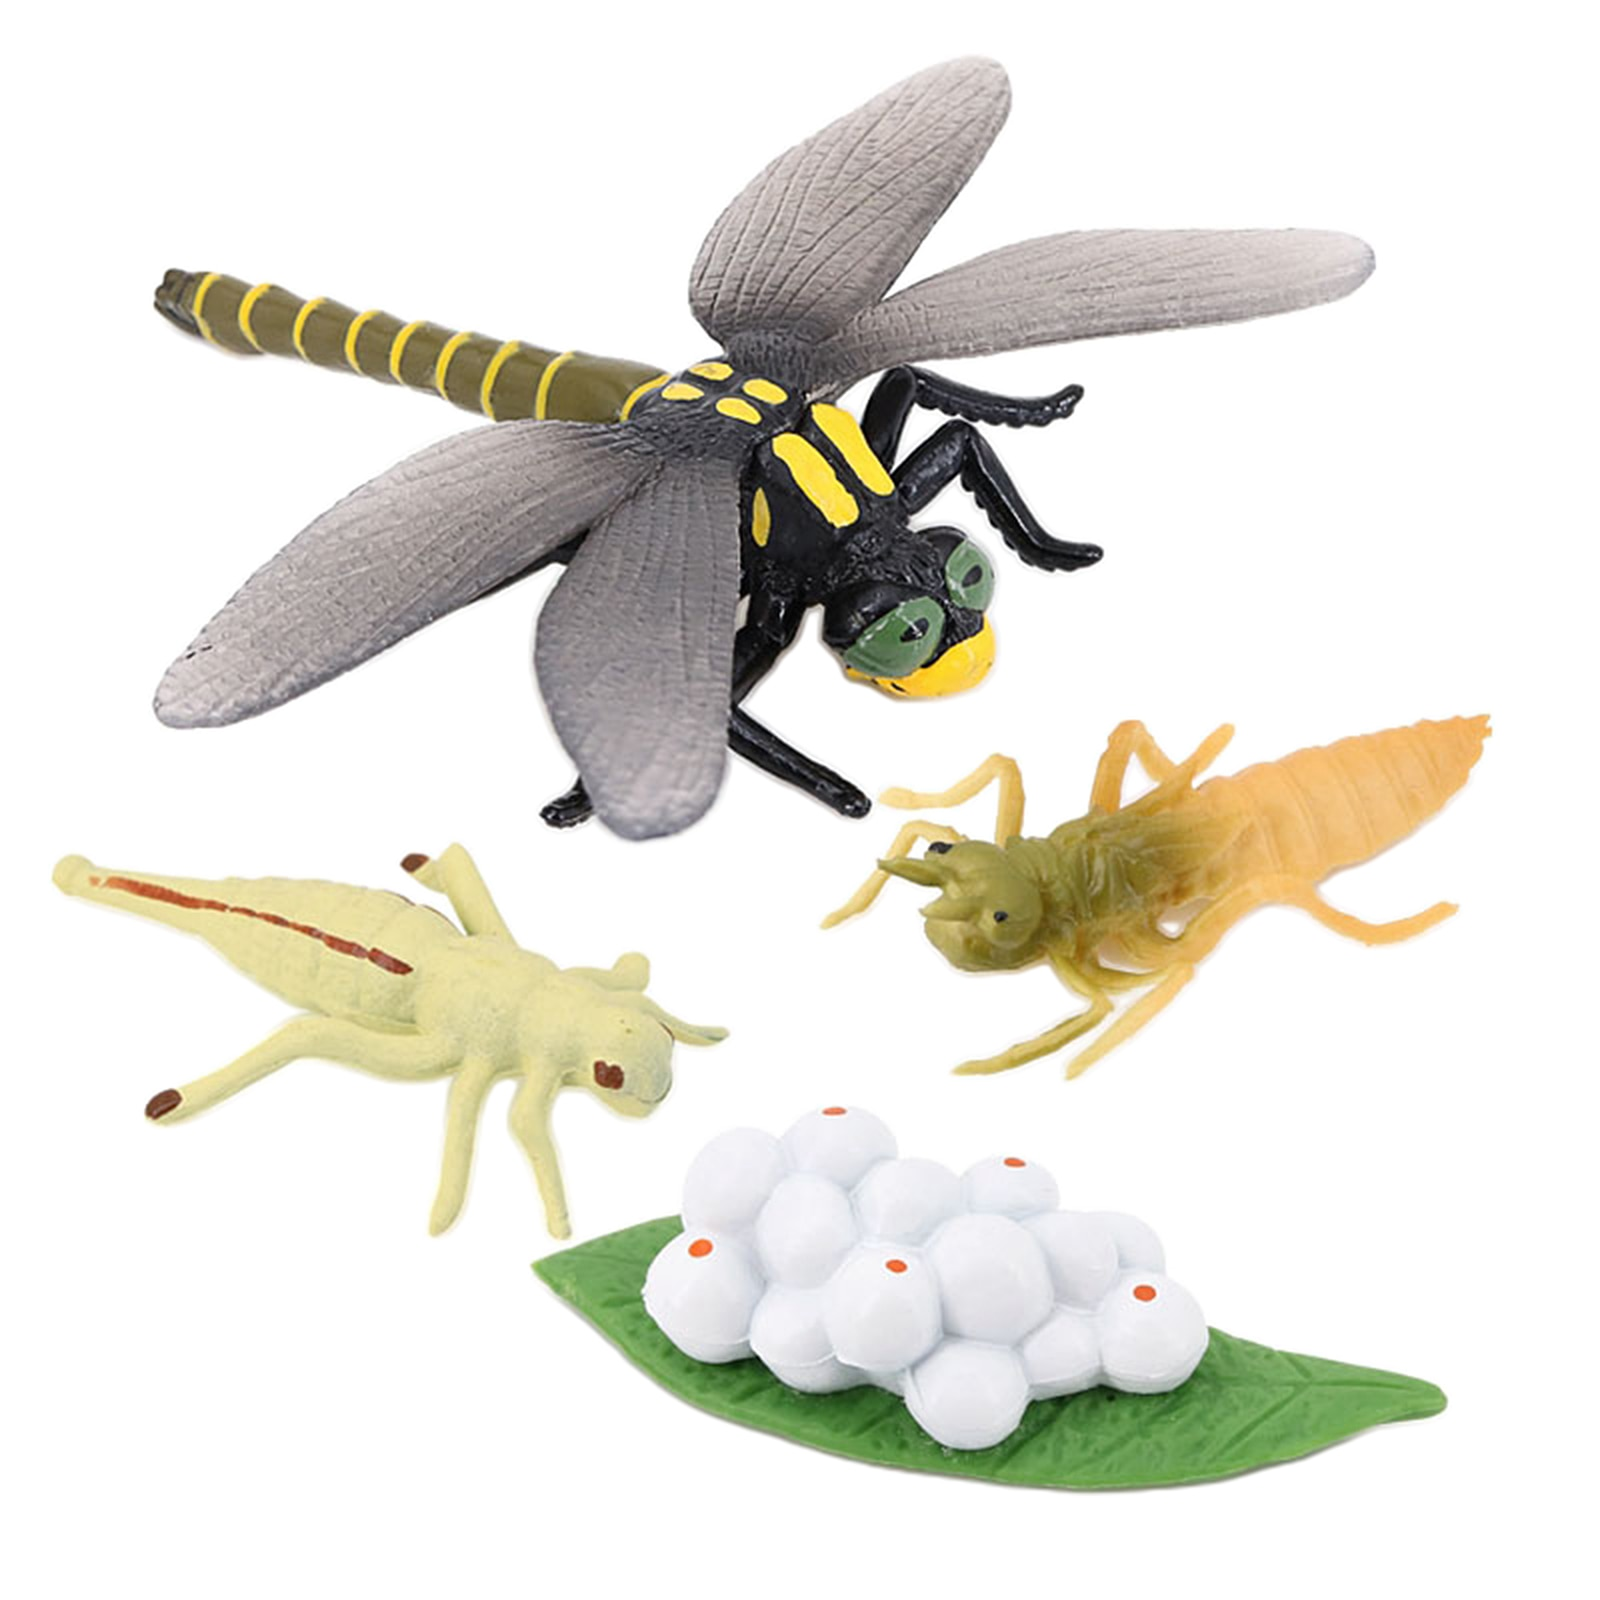 Фото - 4 Stages Life Cycle of Dragonfly Nature Insects Life Cycles Growth Model Game Prop Insect Animal Natural Toy katie marsico life cycles